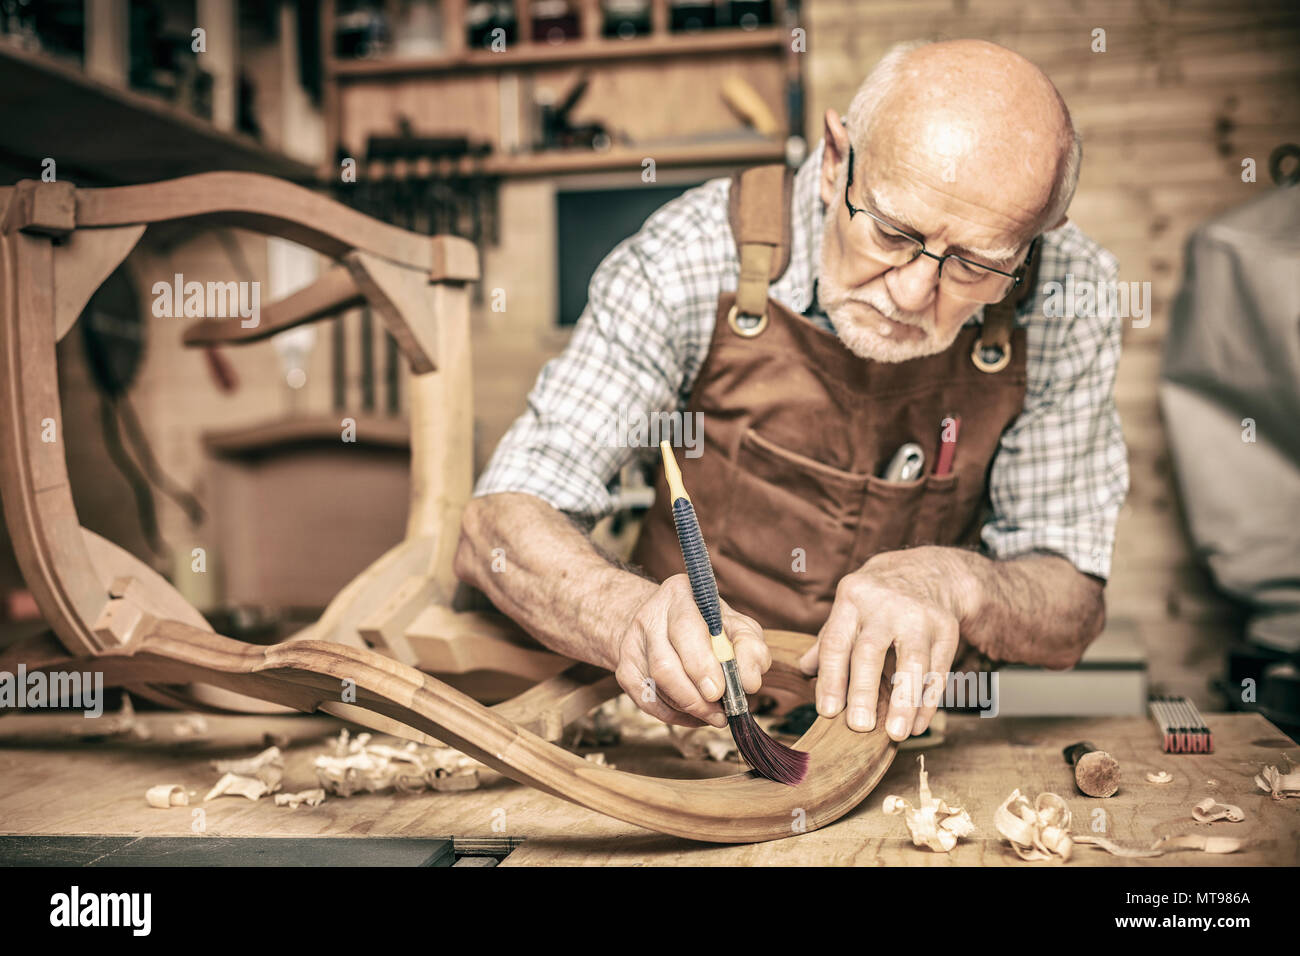 elderly carpenter uses a brush on an unfinished chair - Stock Image